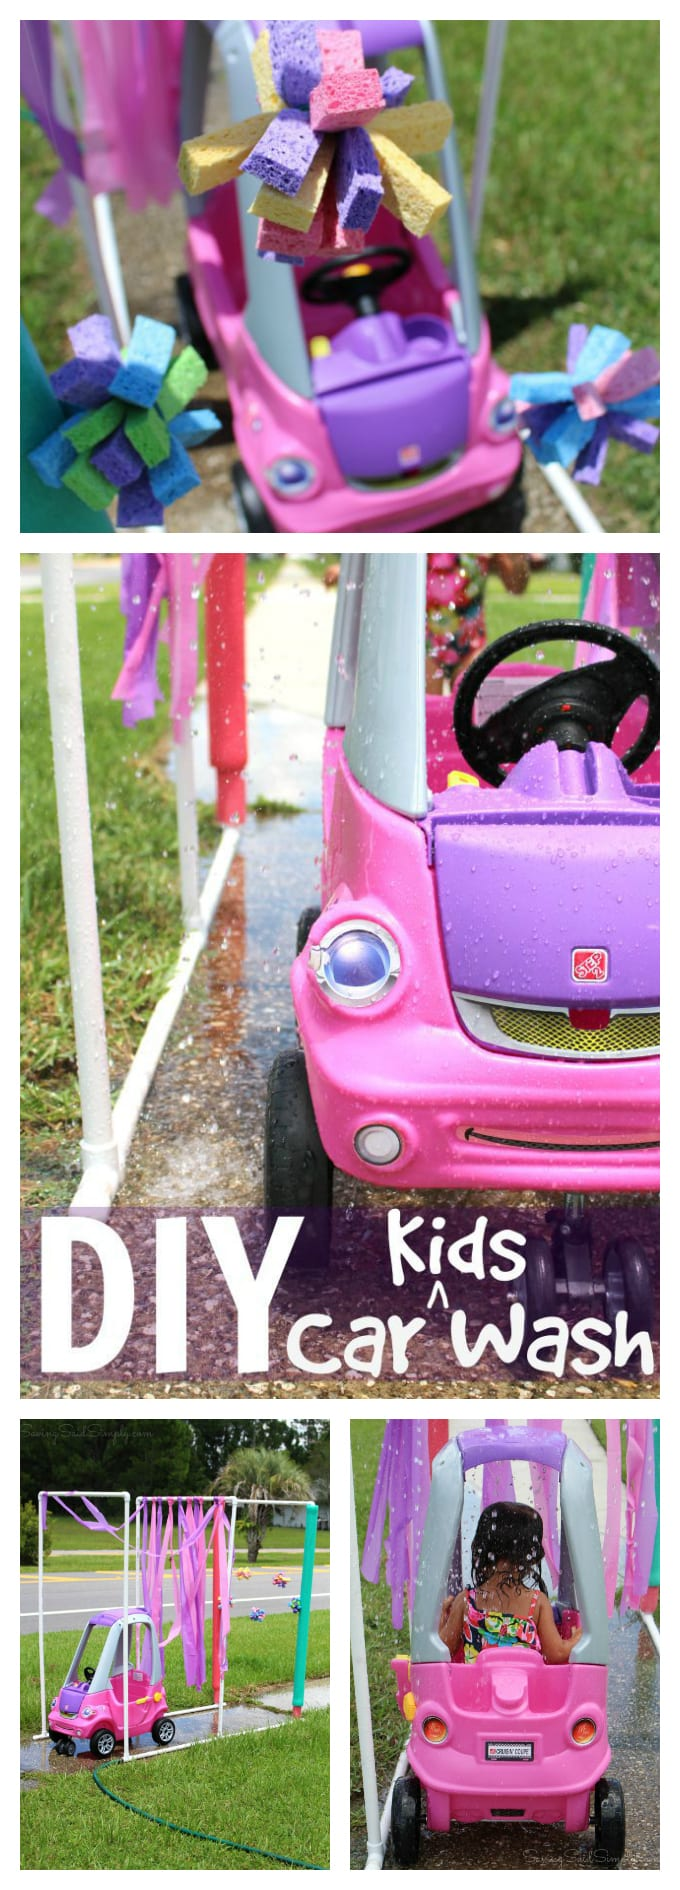 DIY Kid Car Wash | Step2 Easy Turn Coupe Review - Make your own Easy DIY Toddler Car Wash featuring PVC pipes for a fun summer kids activity. Full tutorial, directions & more. Perfect budget water play idea - #DIY #SummerFun #WaterPlay #FunForKids